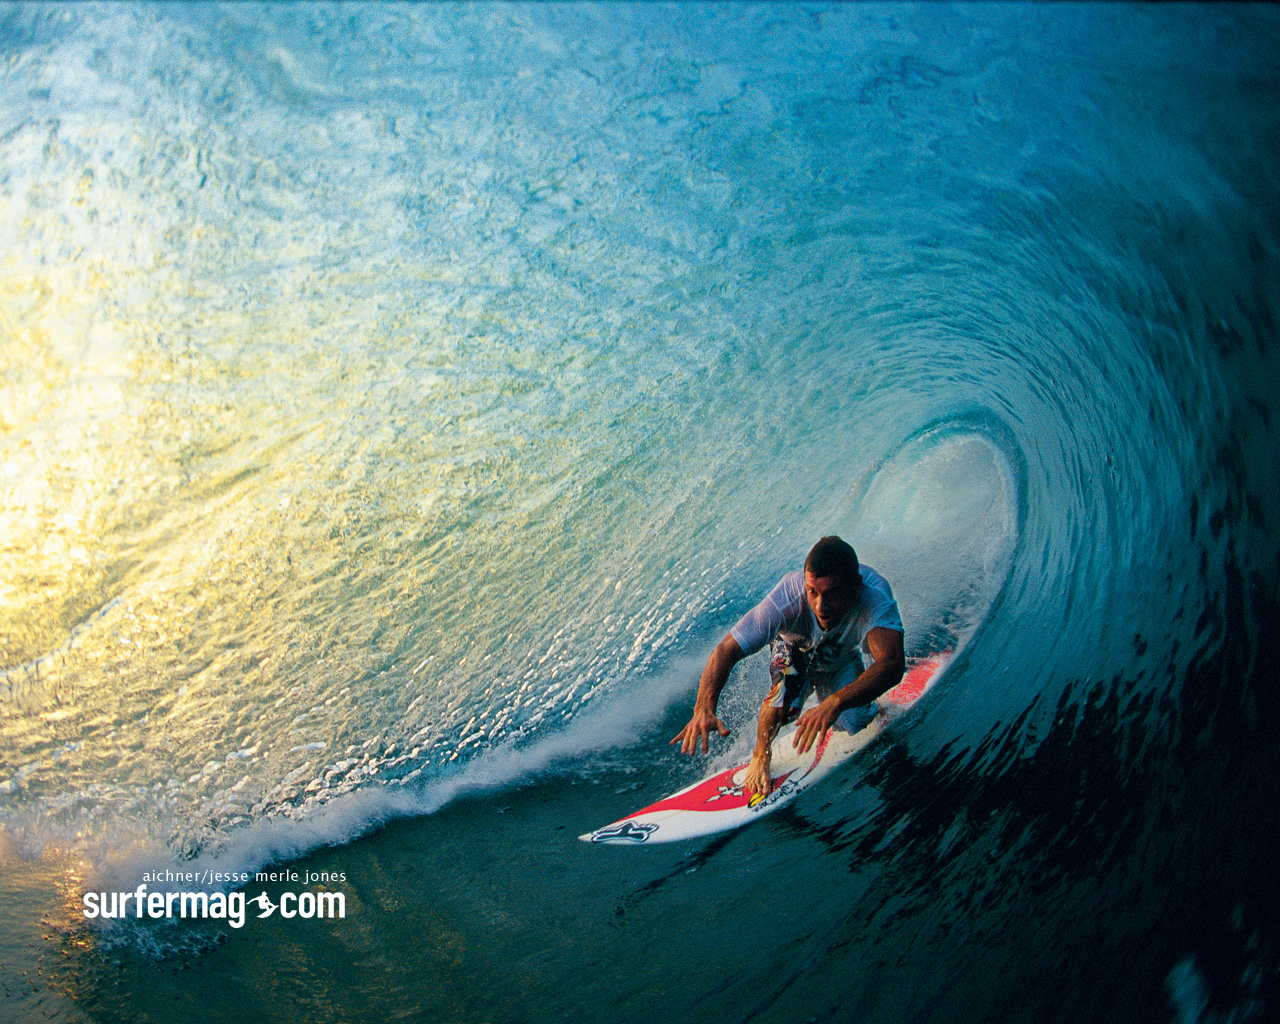 Surfer wallpaper 1280x1024 81605 1280x1024